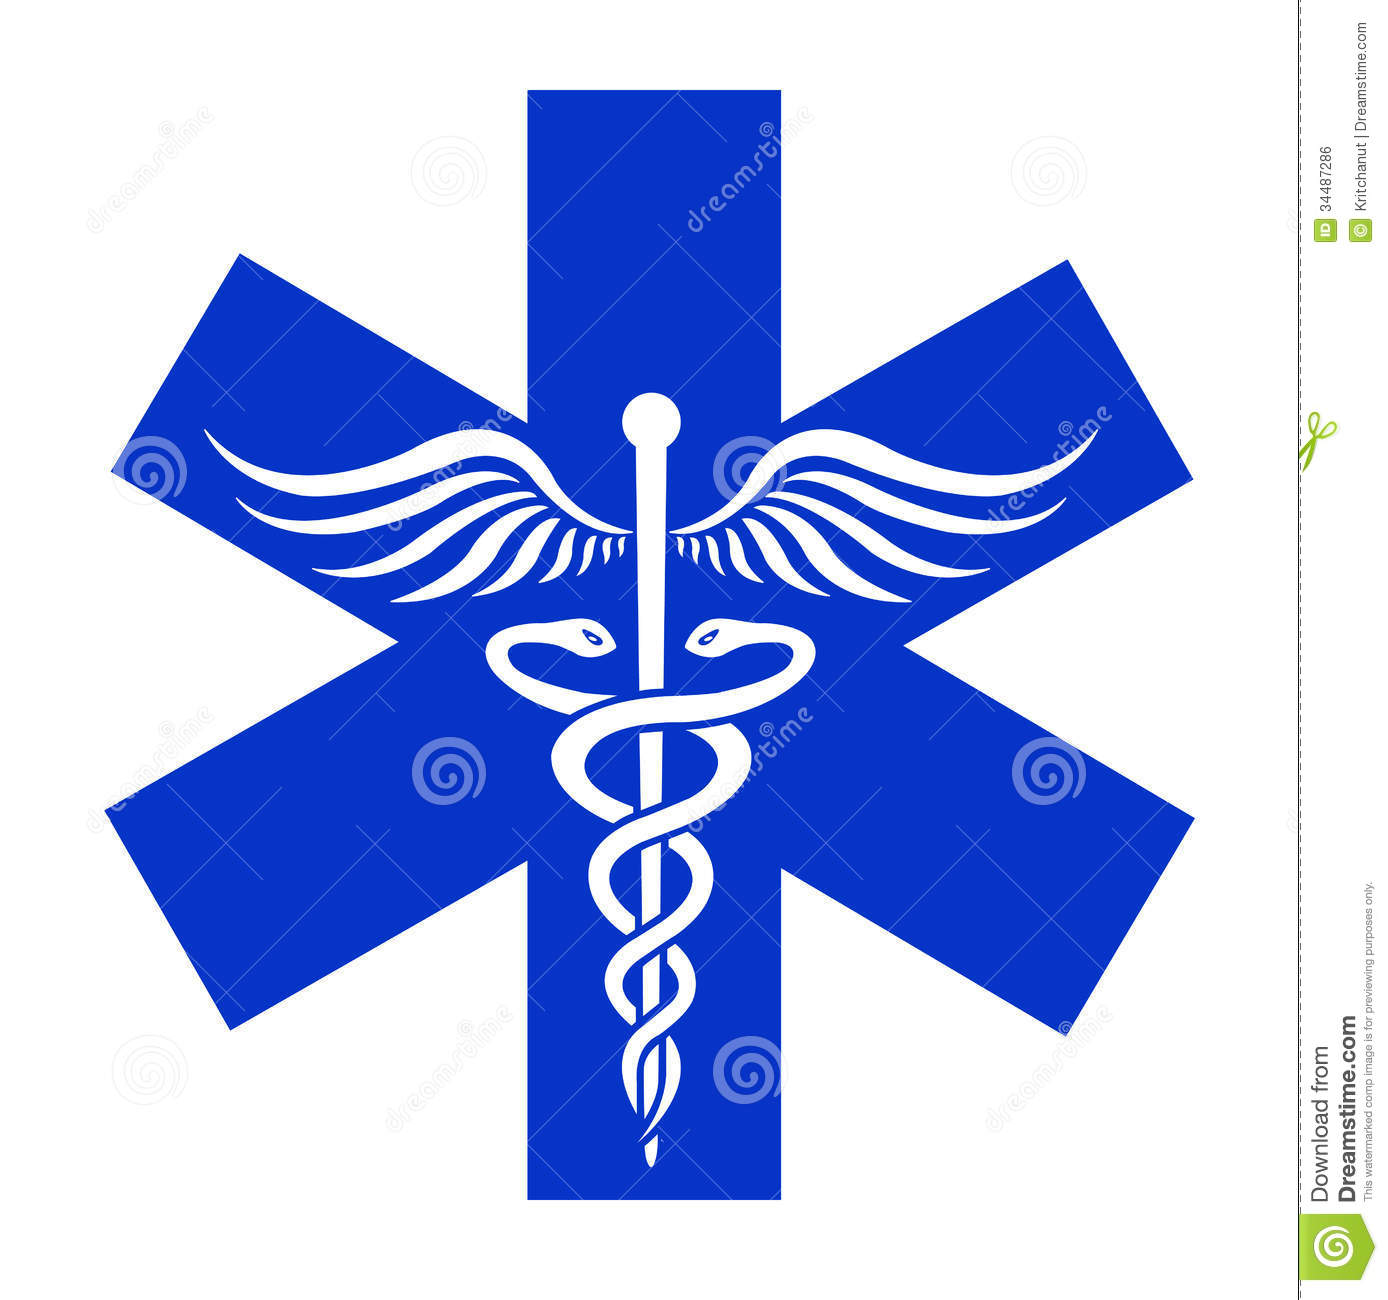 Caduceus medical care icon vector Download thousands of free vectors on Freepik the finder with more than 4 millions free graphic resources